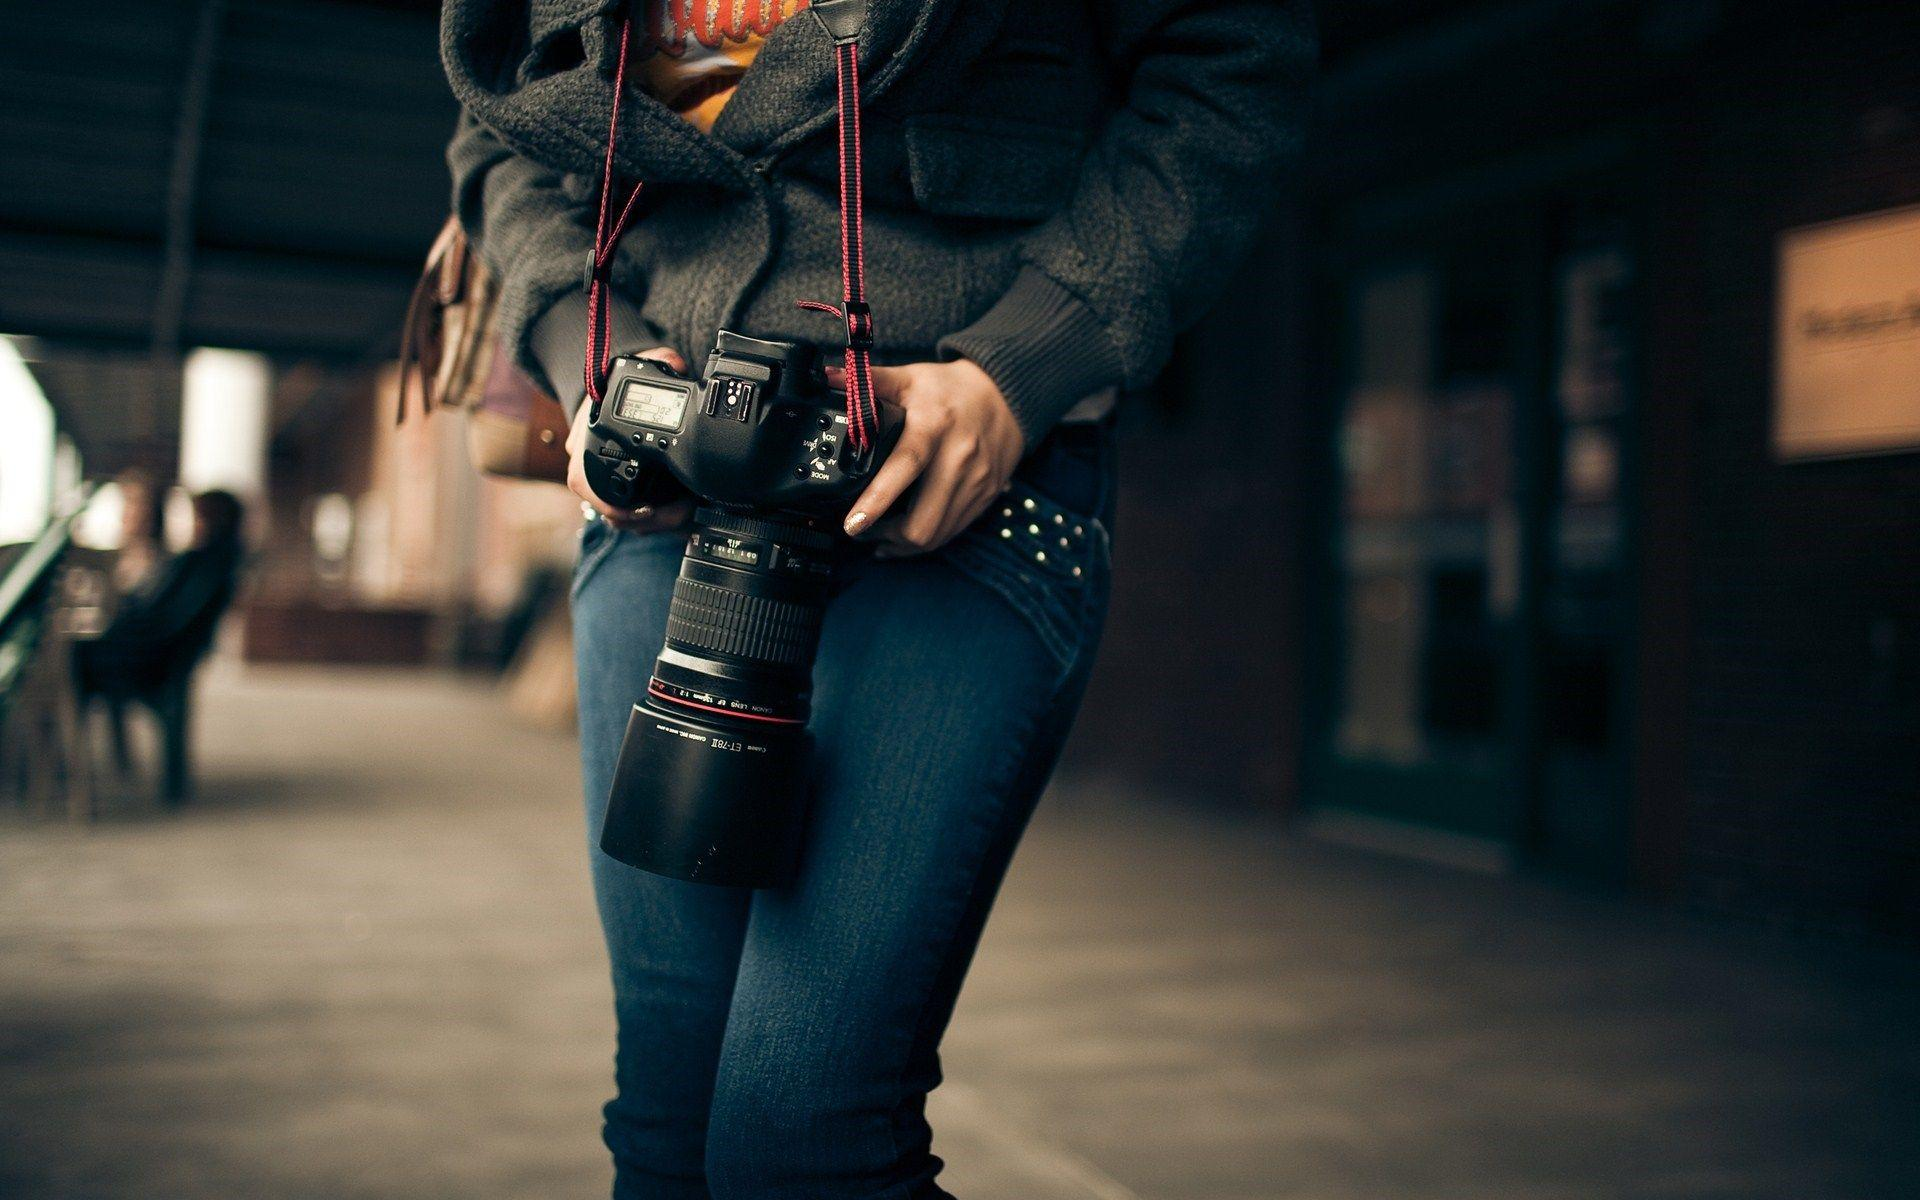 camera, lens, station, photo, nikon, girl, photographer, hd, wallpaper